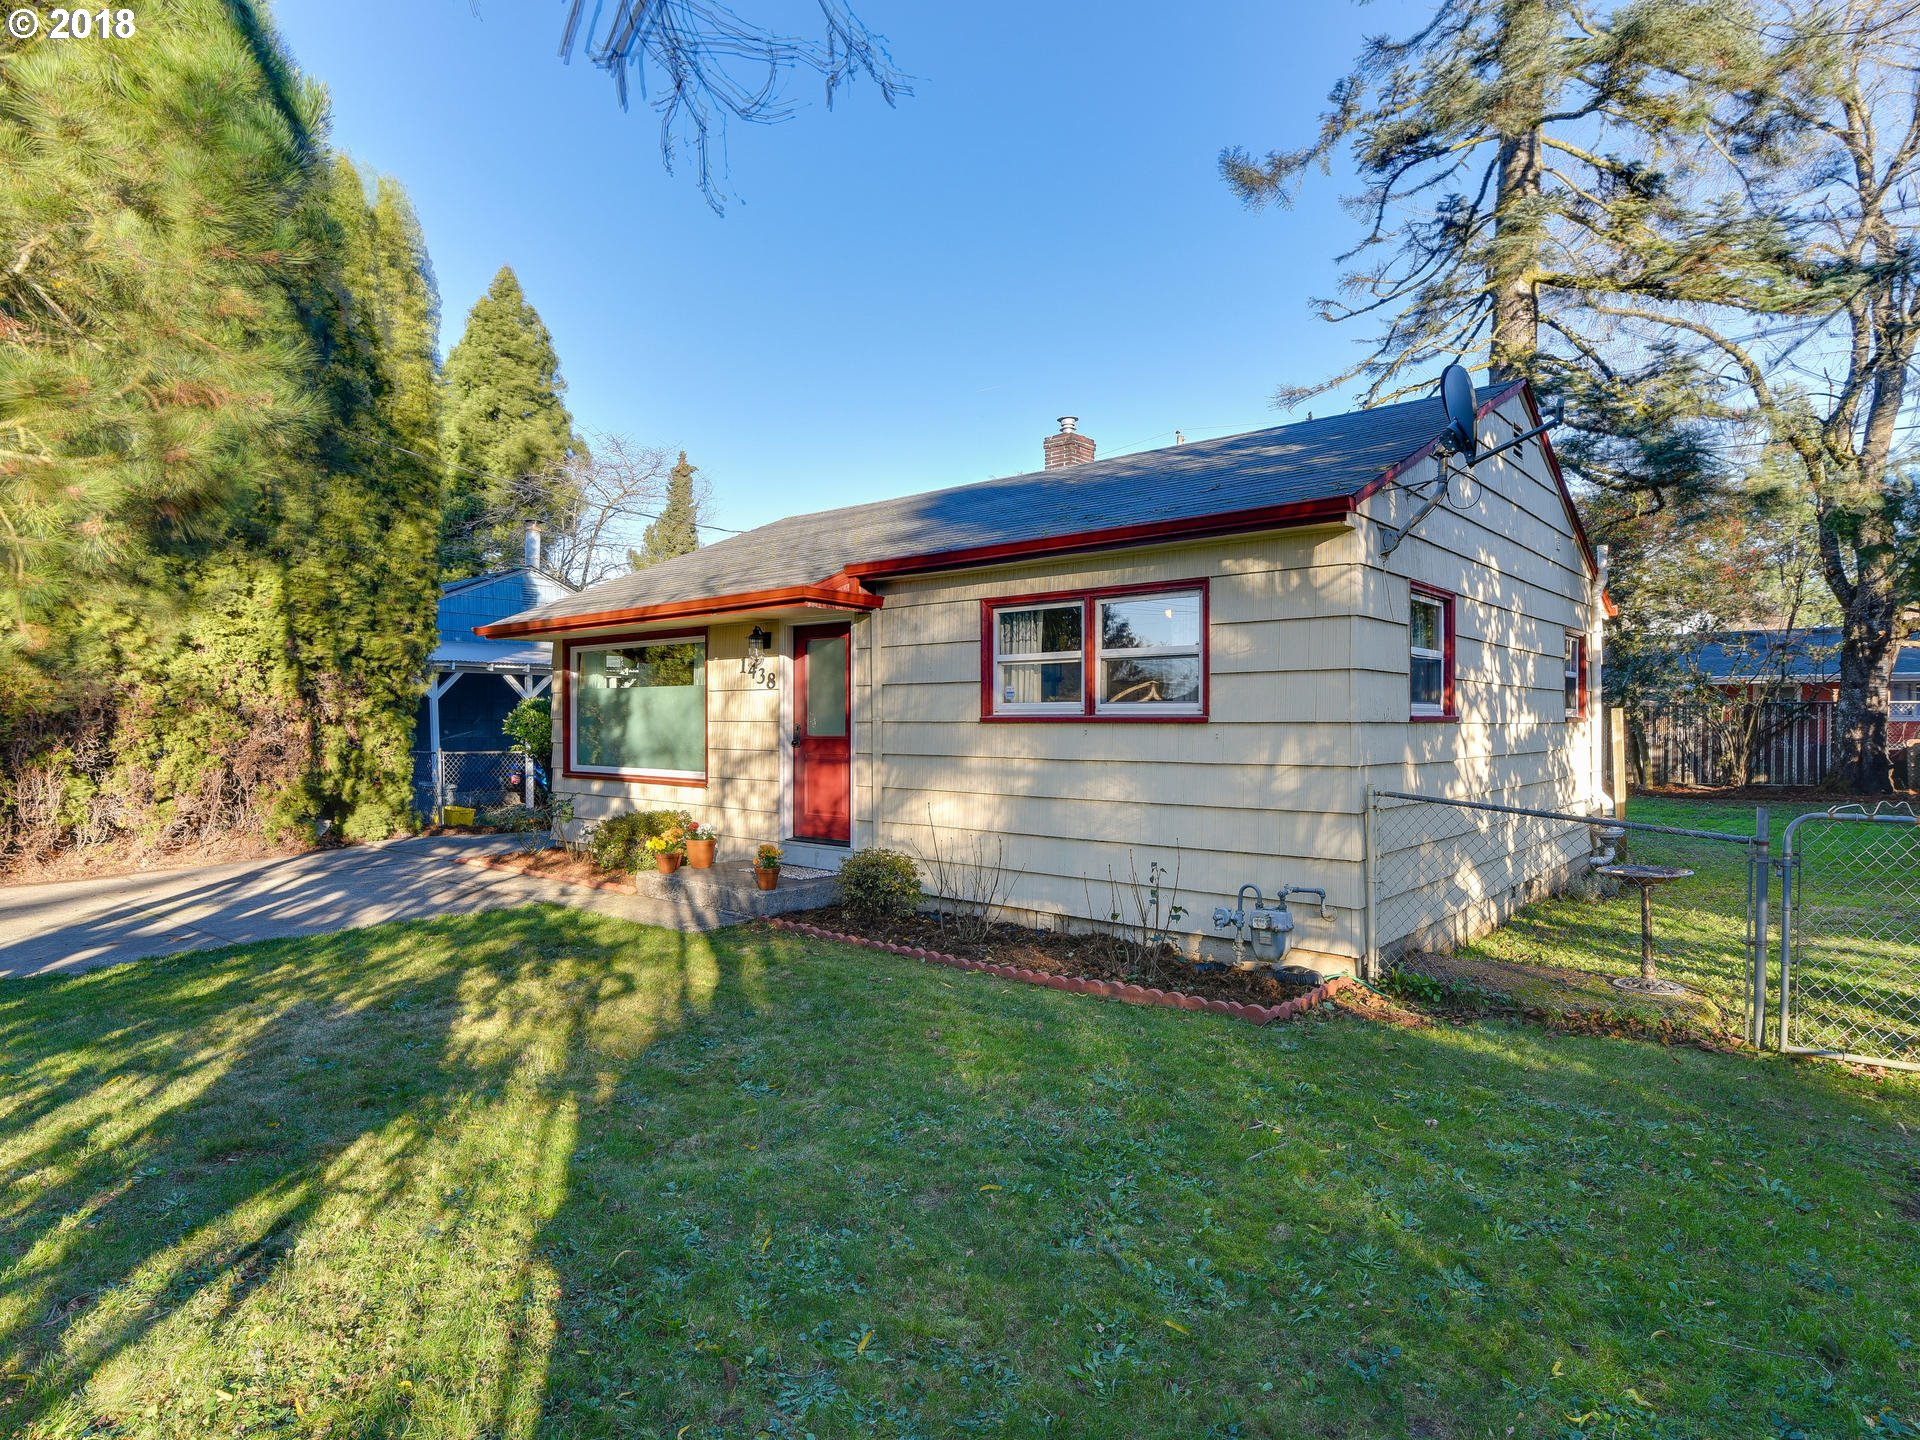 1438 SE 174TH AVE Portland, OR 97233 - MLS #: 18286298